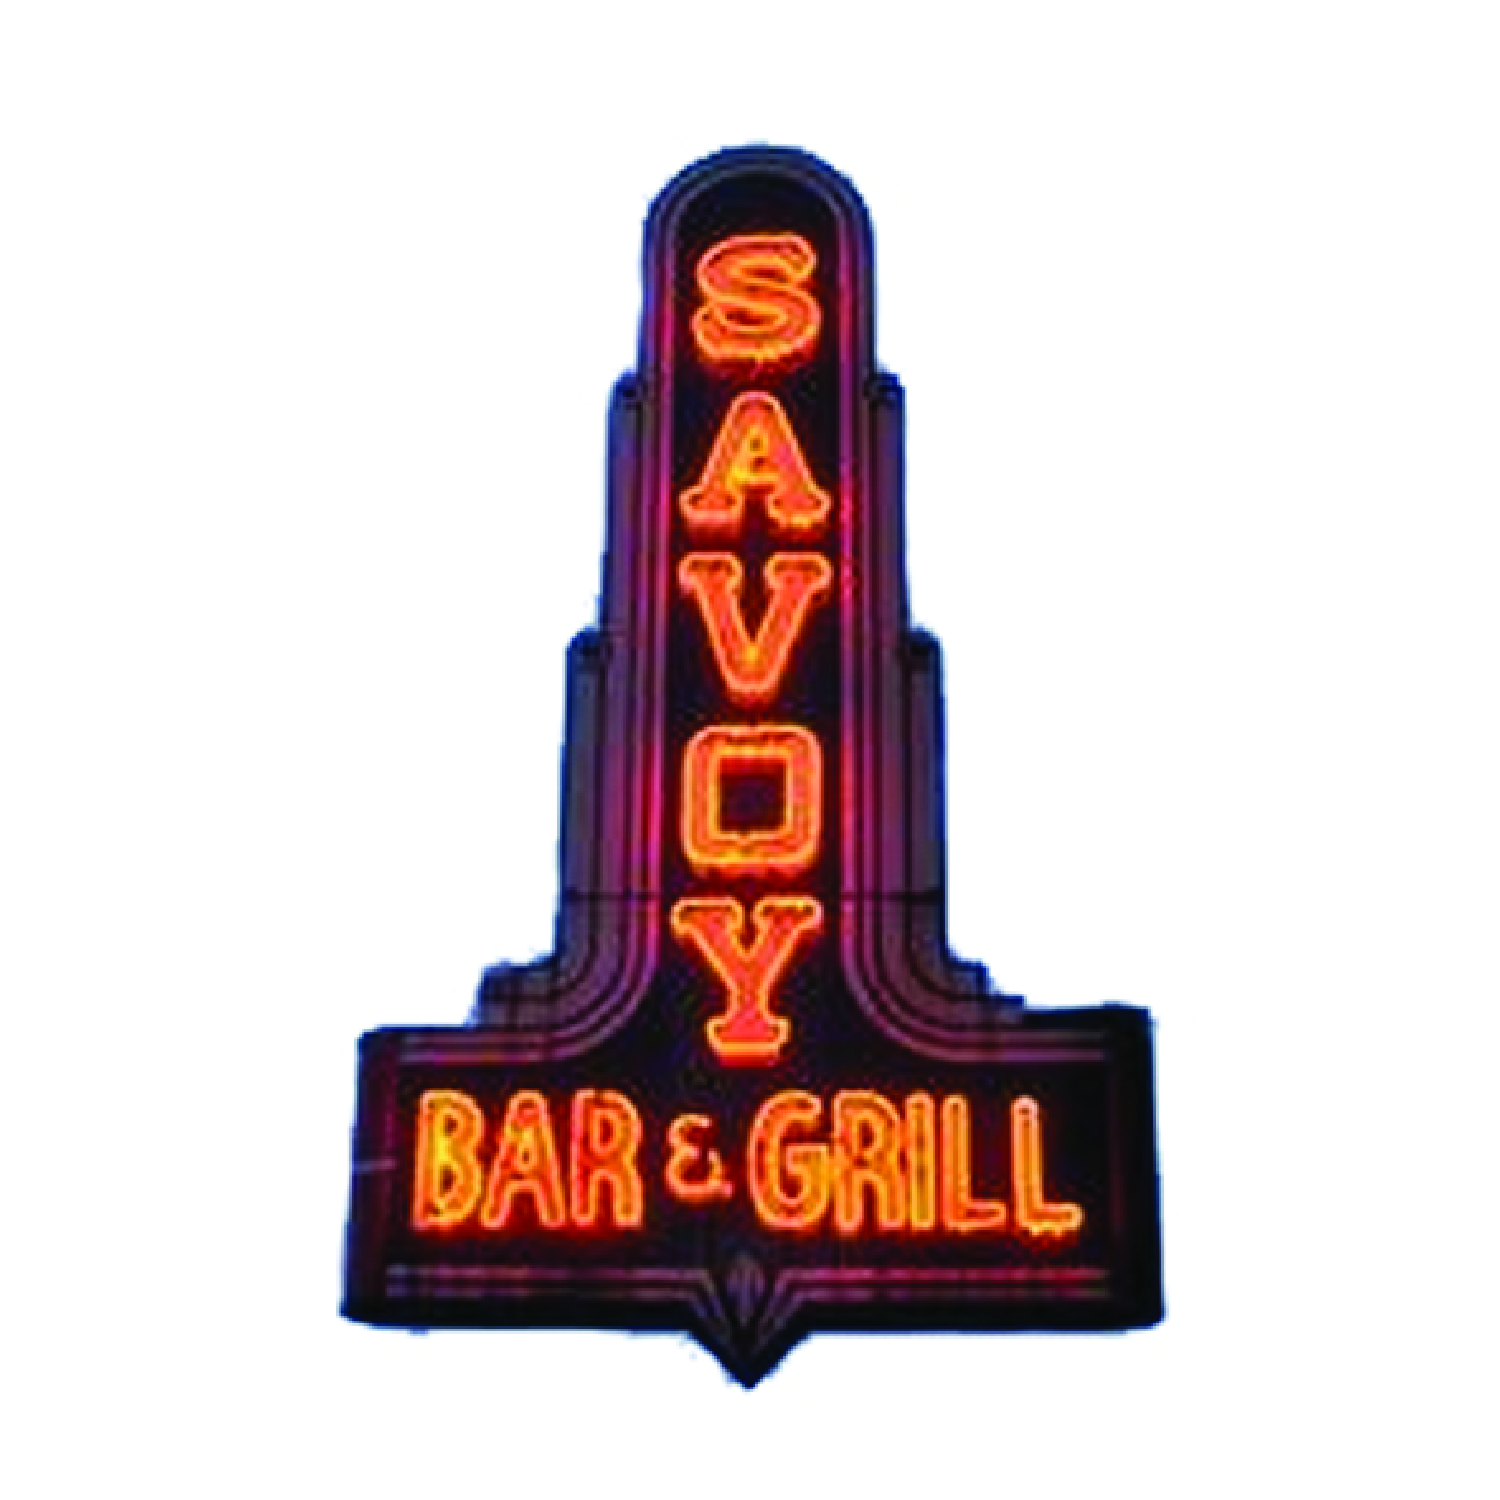 The Savoy Bar & Grill